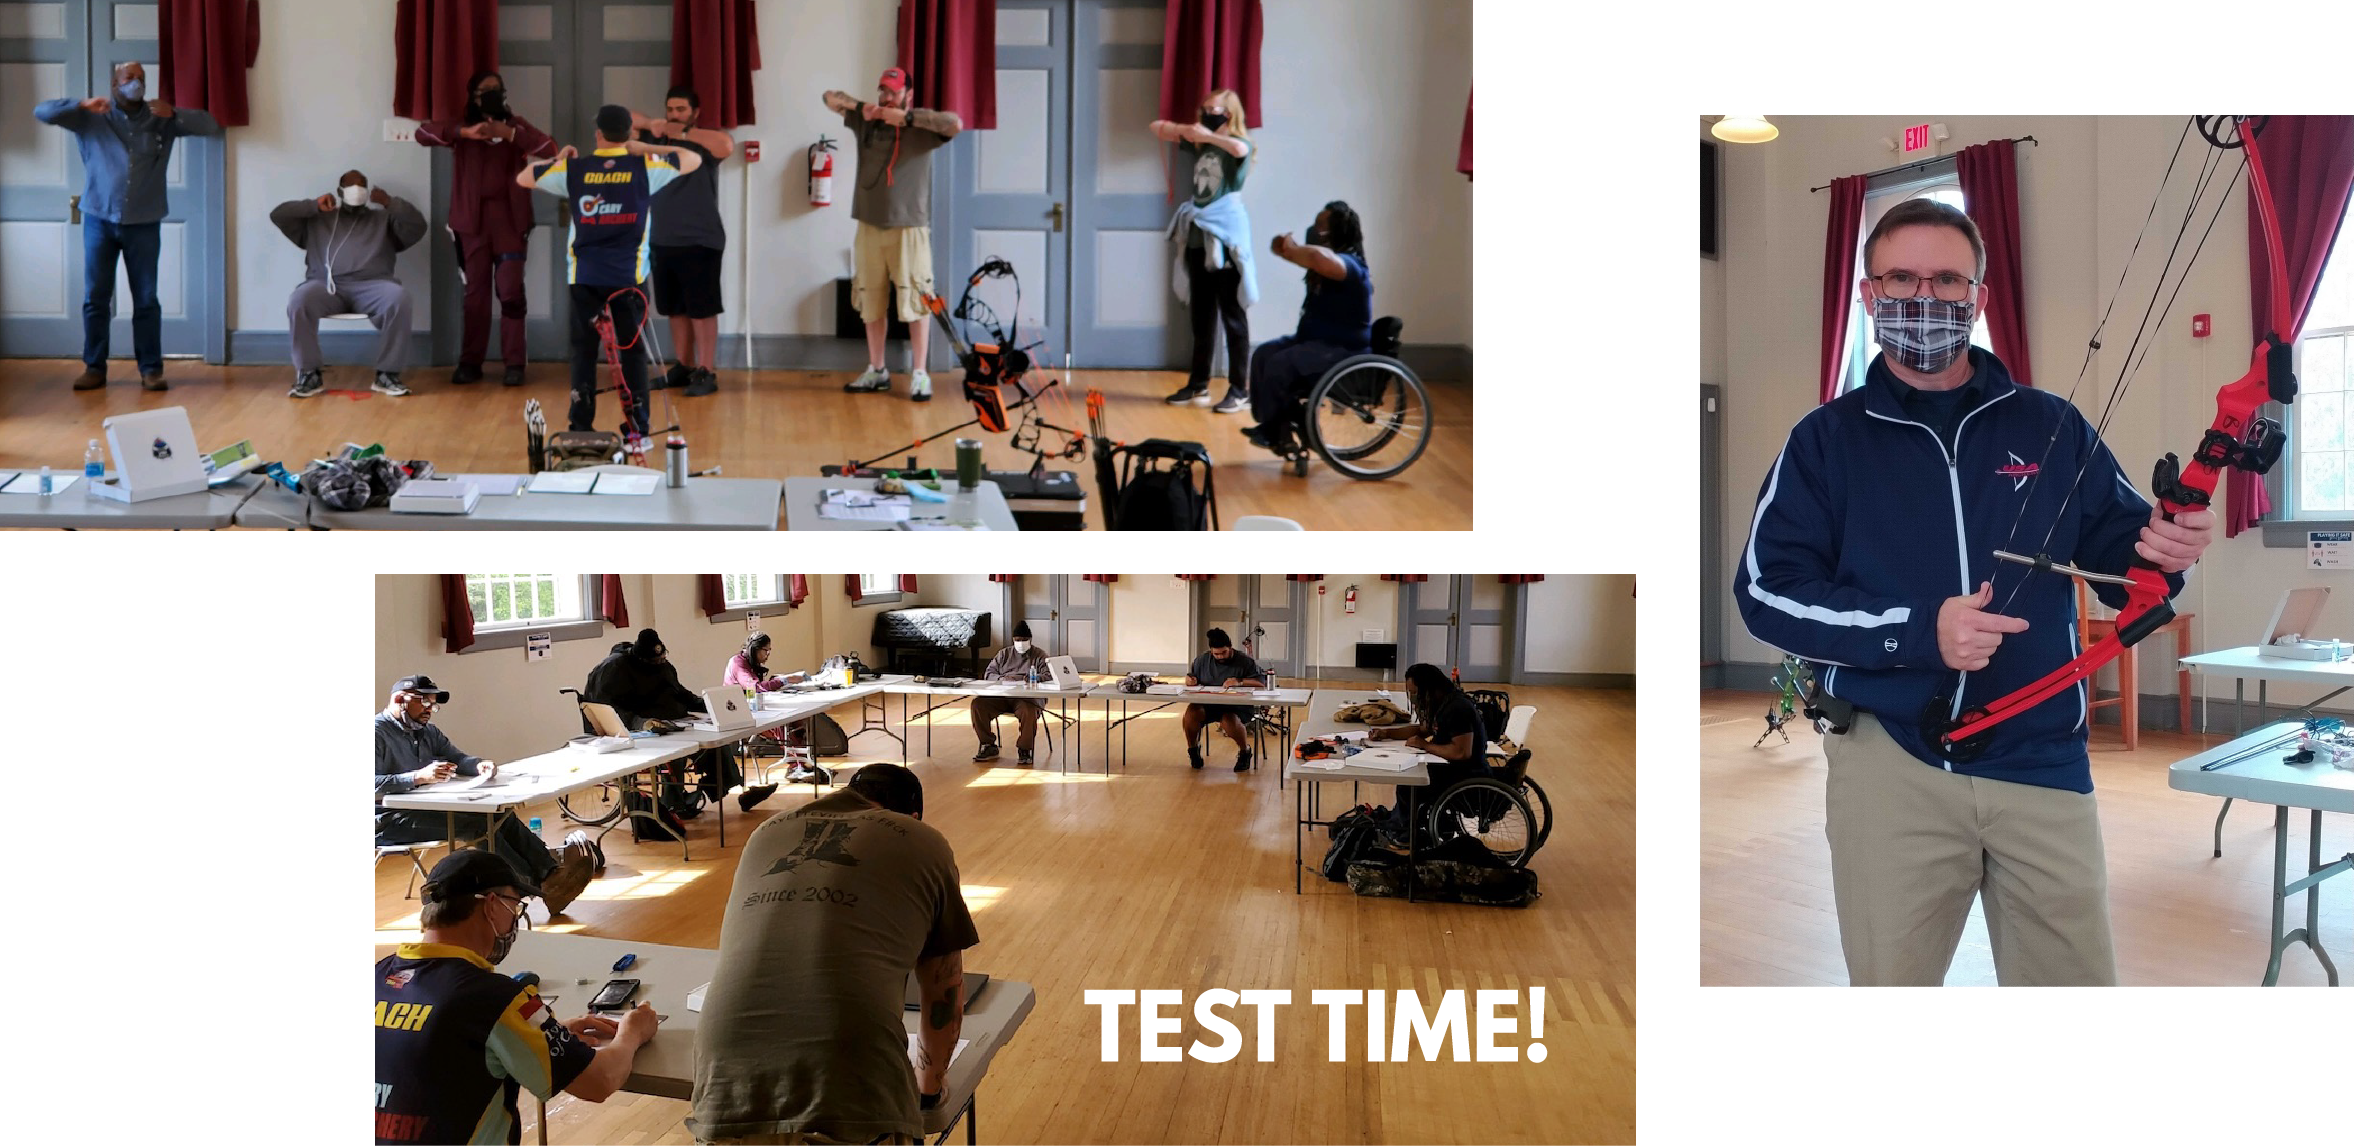 """3 photos in a collage. The top photo: an instructor shows a group of seven adults students the proper archery stance. All have their arms bent with fists together at the chest. Some are sitting, some are standing. One student is using a wheelchair. Photo 2: a man stands with a mask on holding a red recurve bow. Photo 3: students sit at tables with heads looking down at paper while taking a test. text reads """"Test Time!"""""""